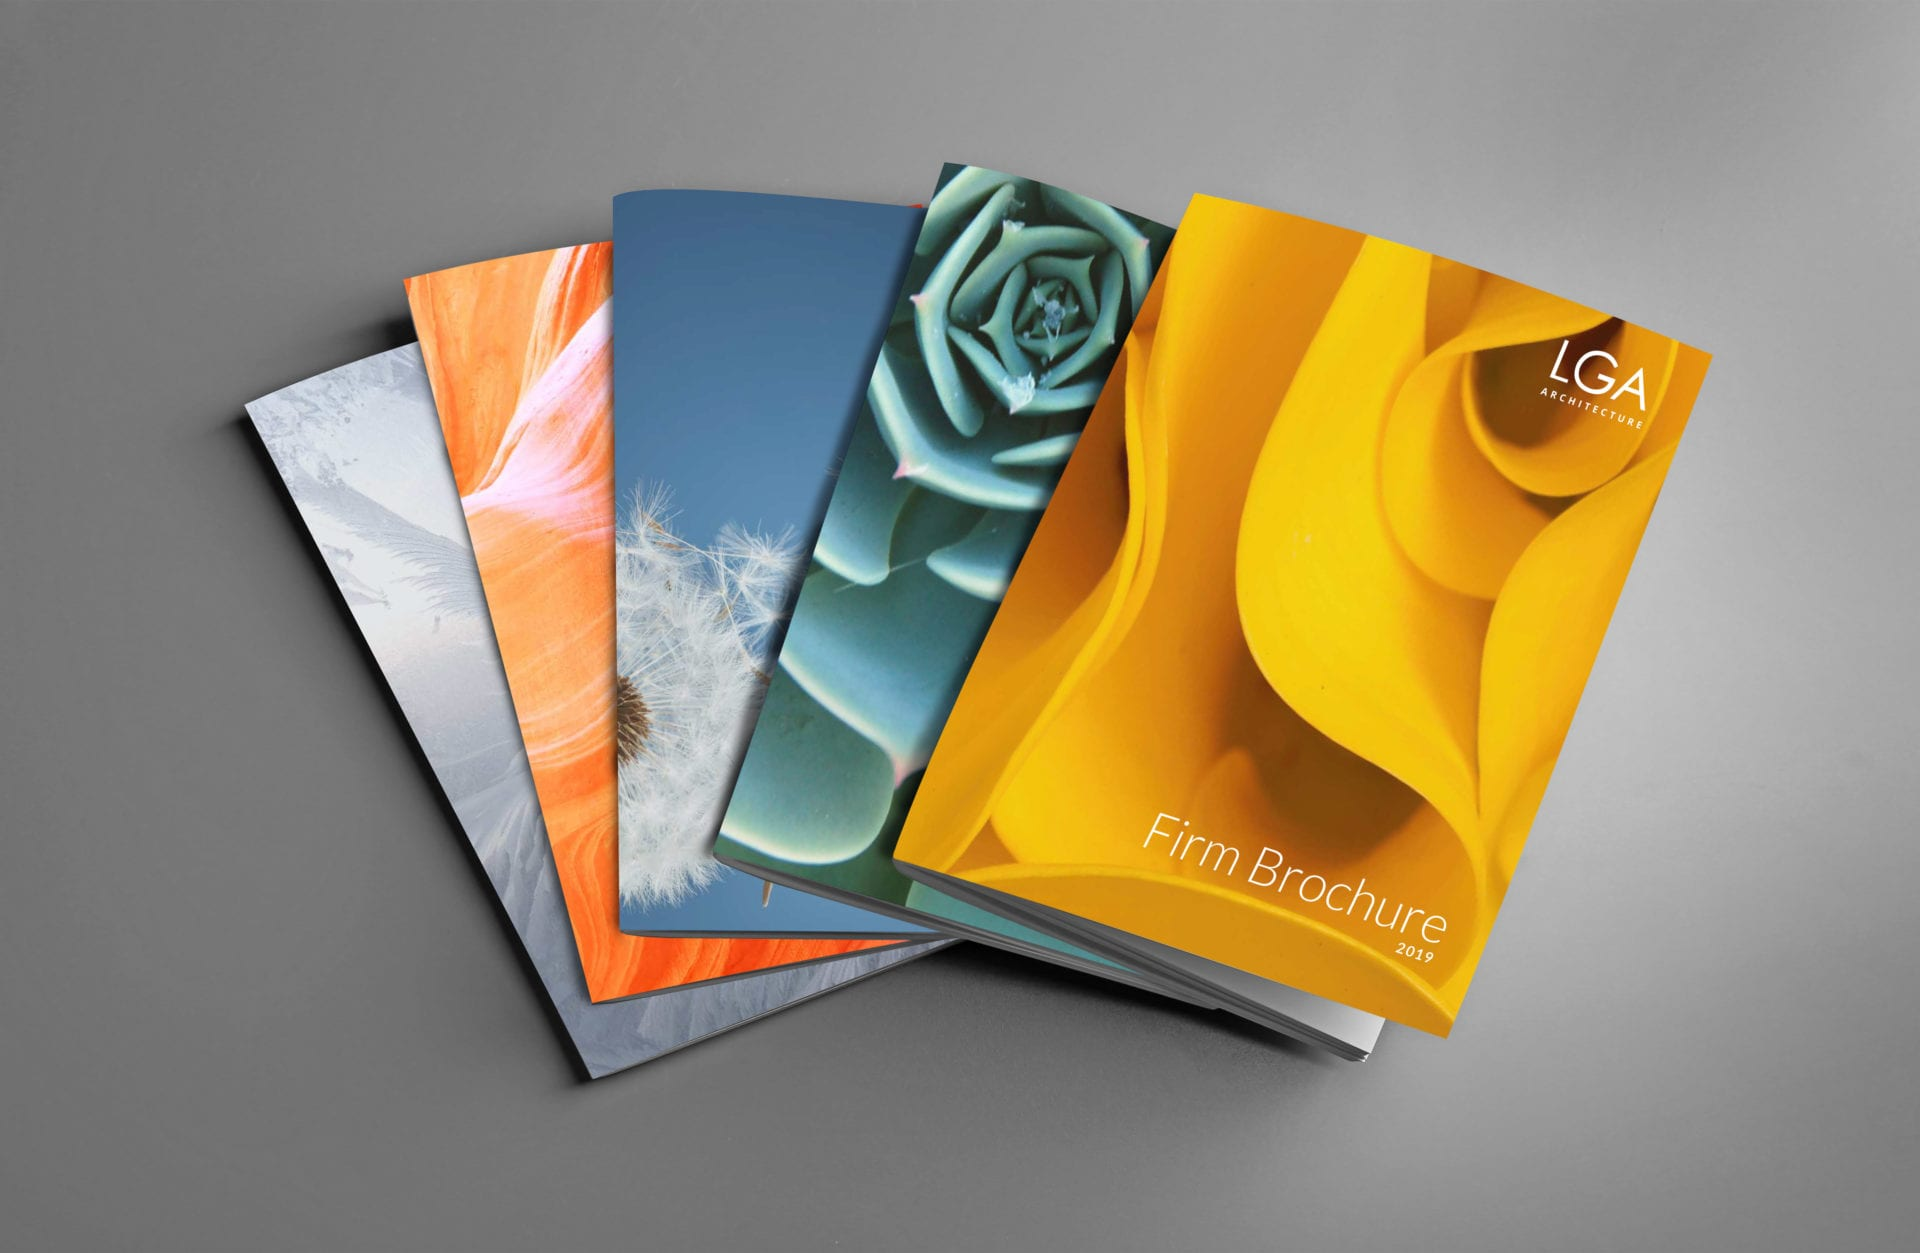 LGA Architecture firm brochures